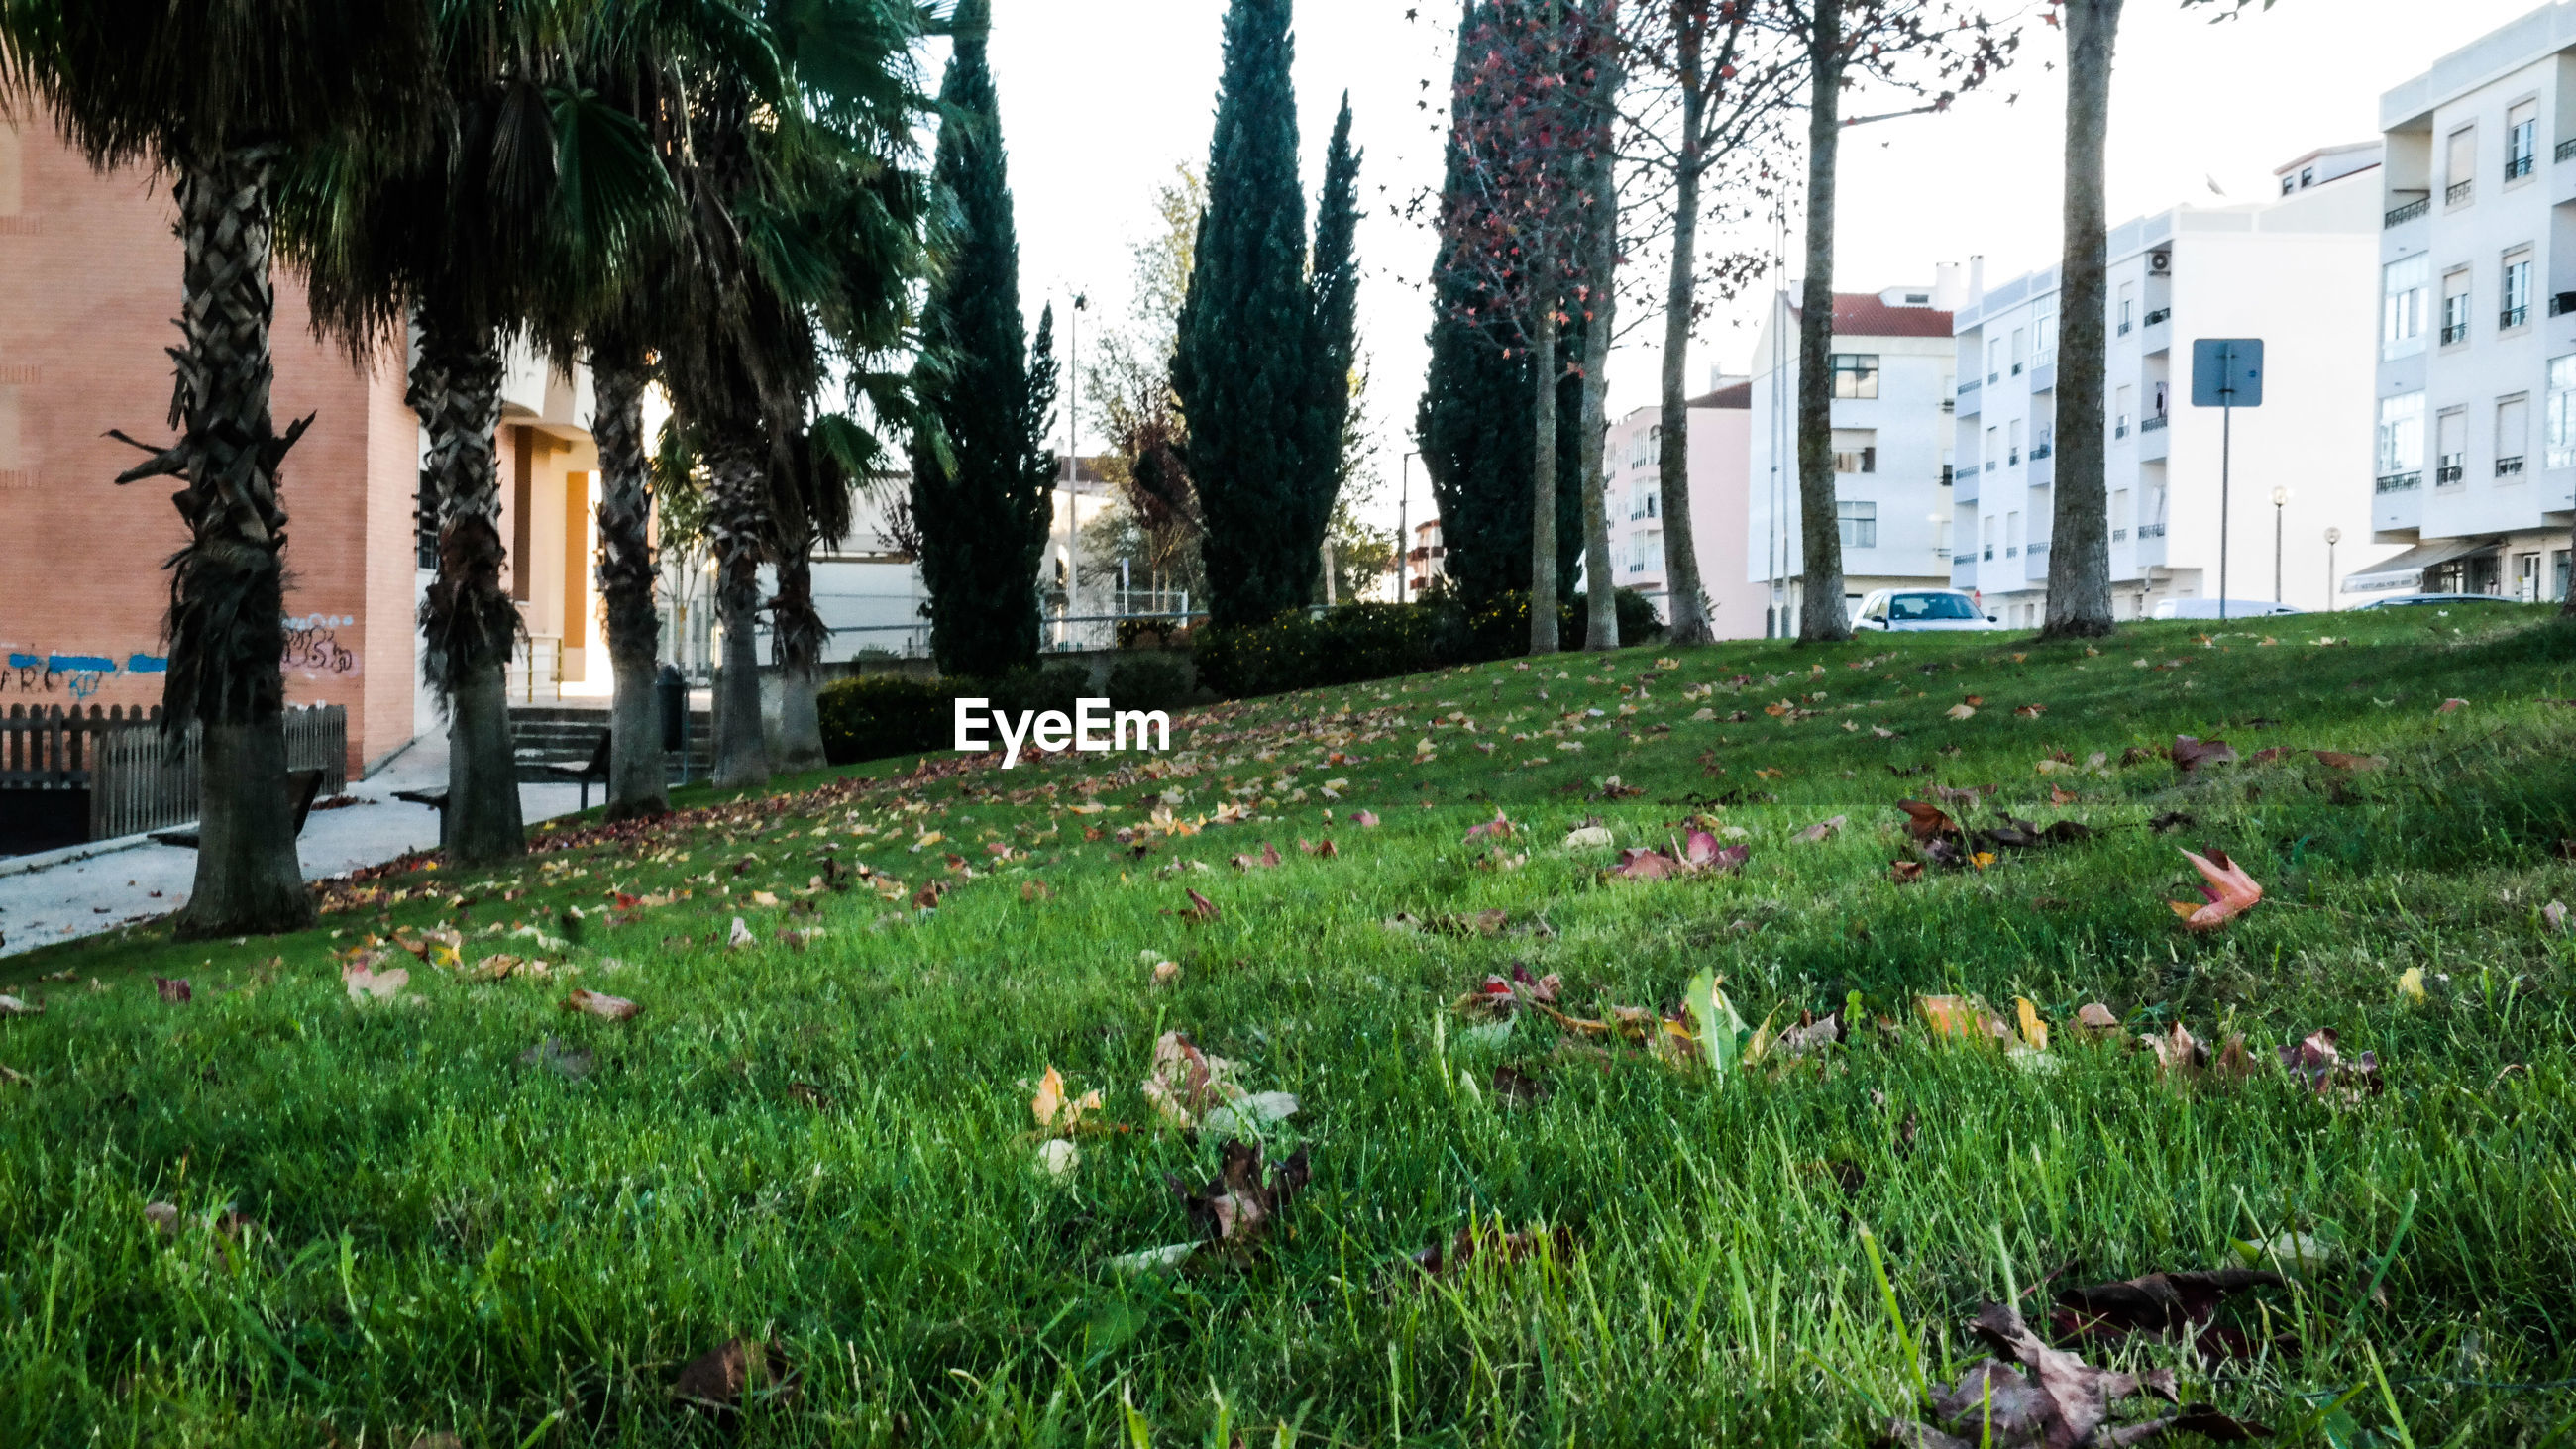 Trees growing on messy grassy field by buildings